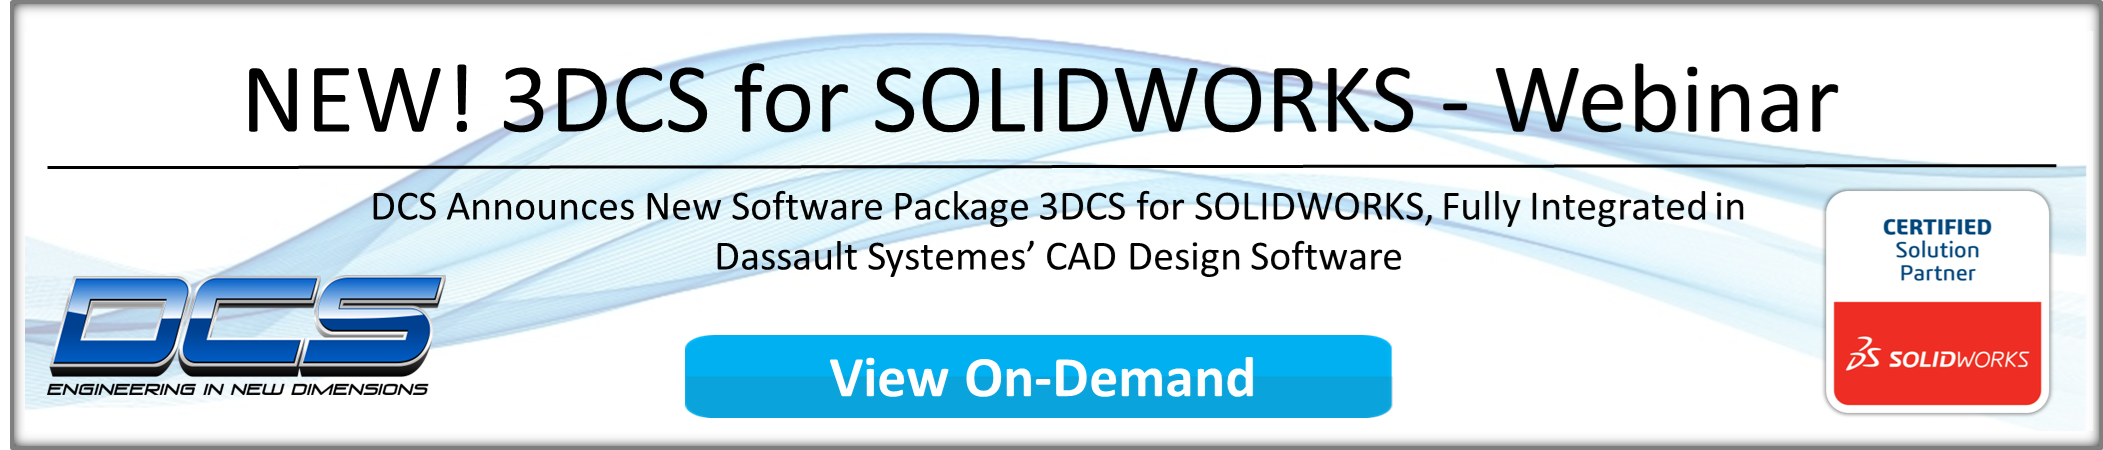 3DCS for SOLIDWORKS On-Demand